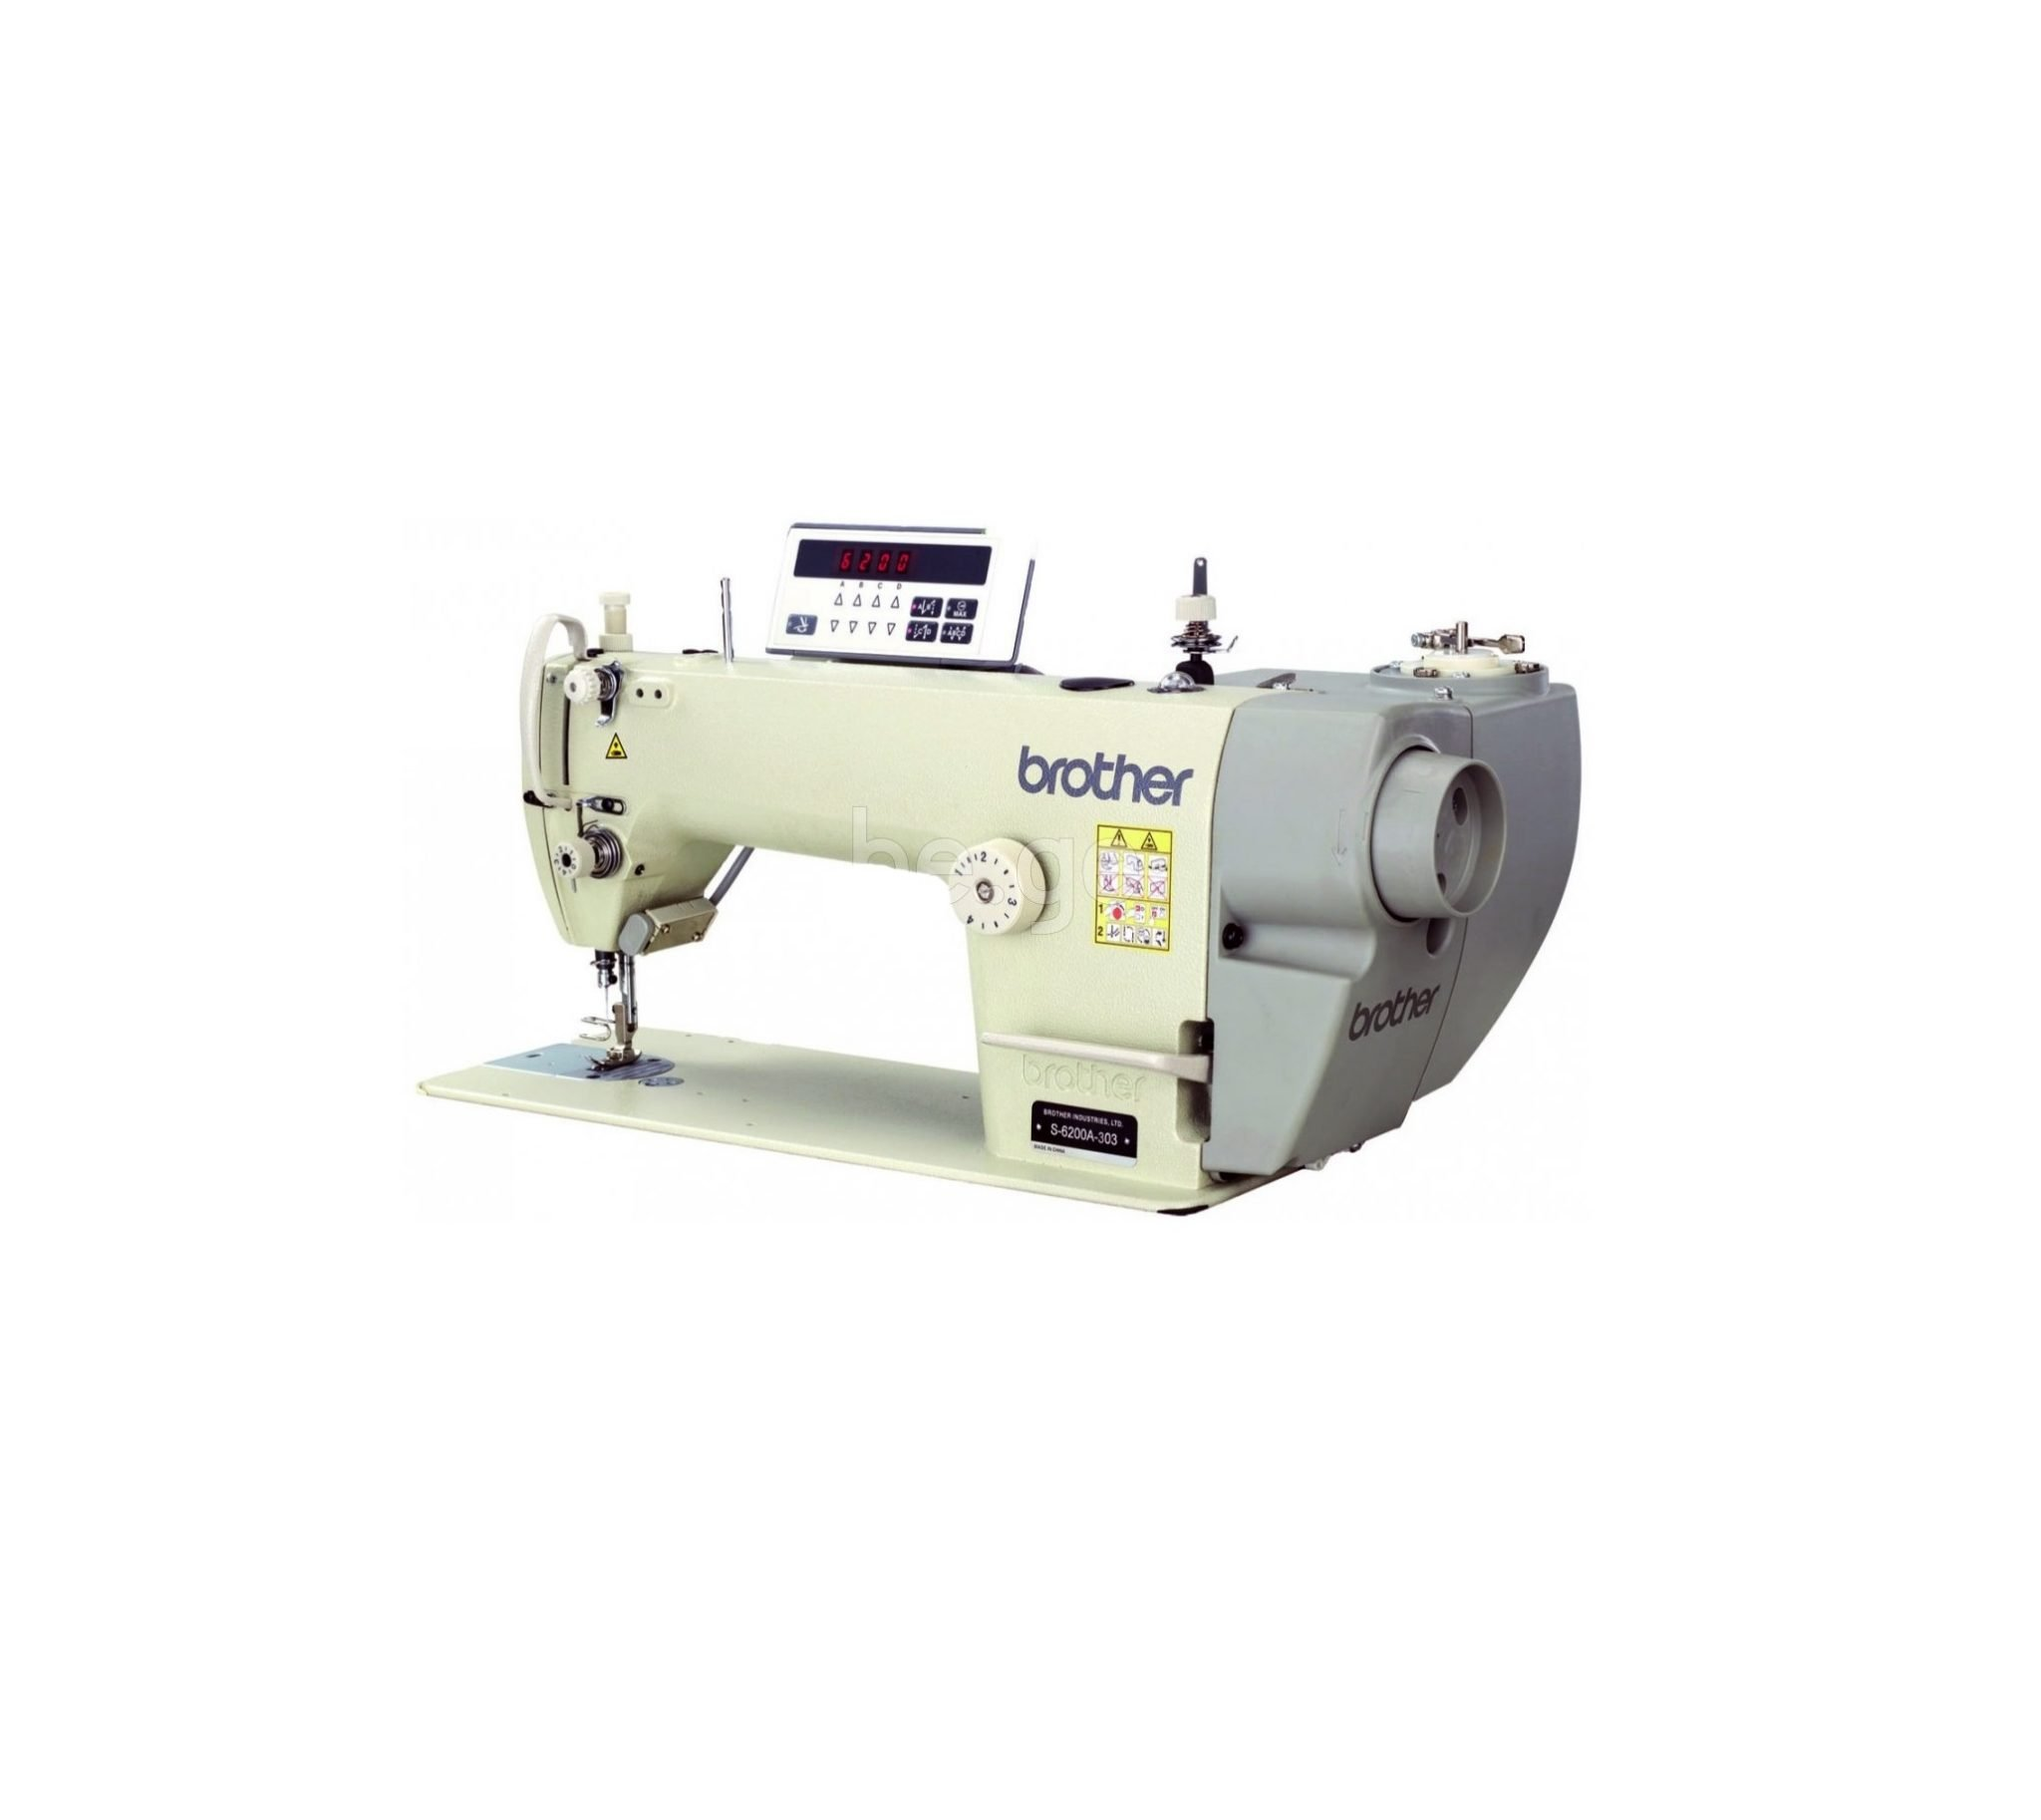 S-6200A Brother Lock Stitch Machine Industrial Commercial Blackmore and Roy Sewing Machine Sales Services and Repairs Western Australia Perth WA